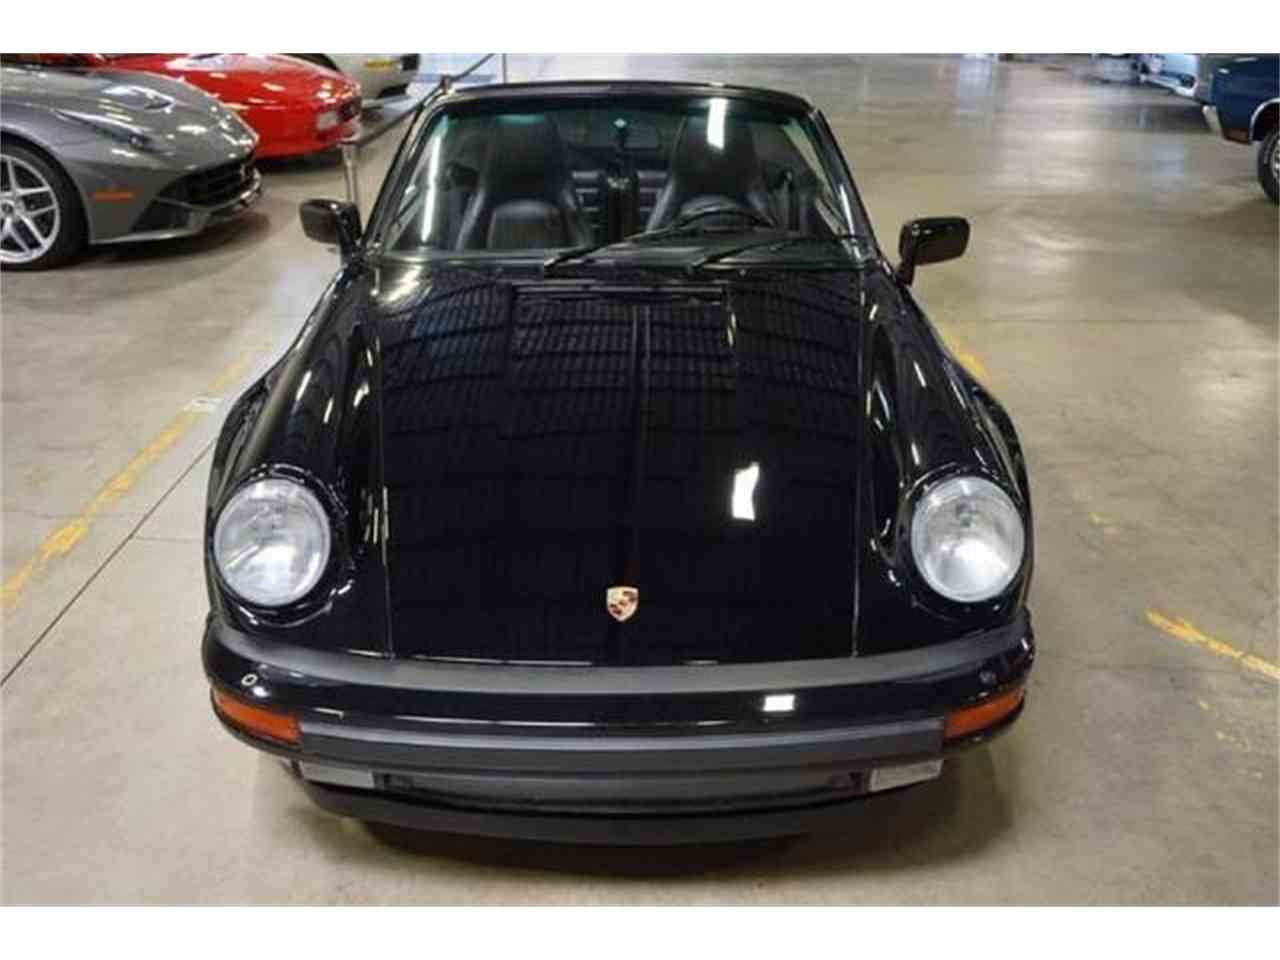 Large Picture of 1989 Porsche 911 Turbo located in Ohio - $144,990.00 Offered by R&H Motor Car Group - EVKF